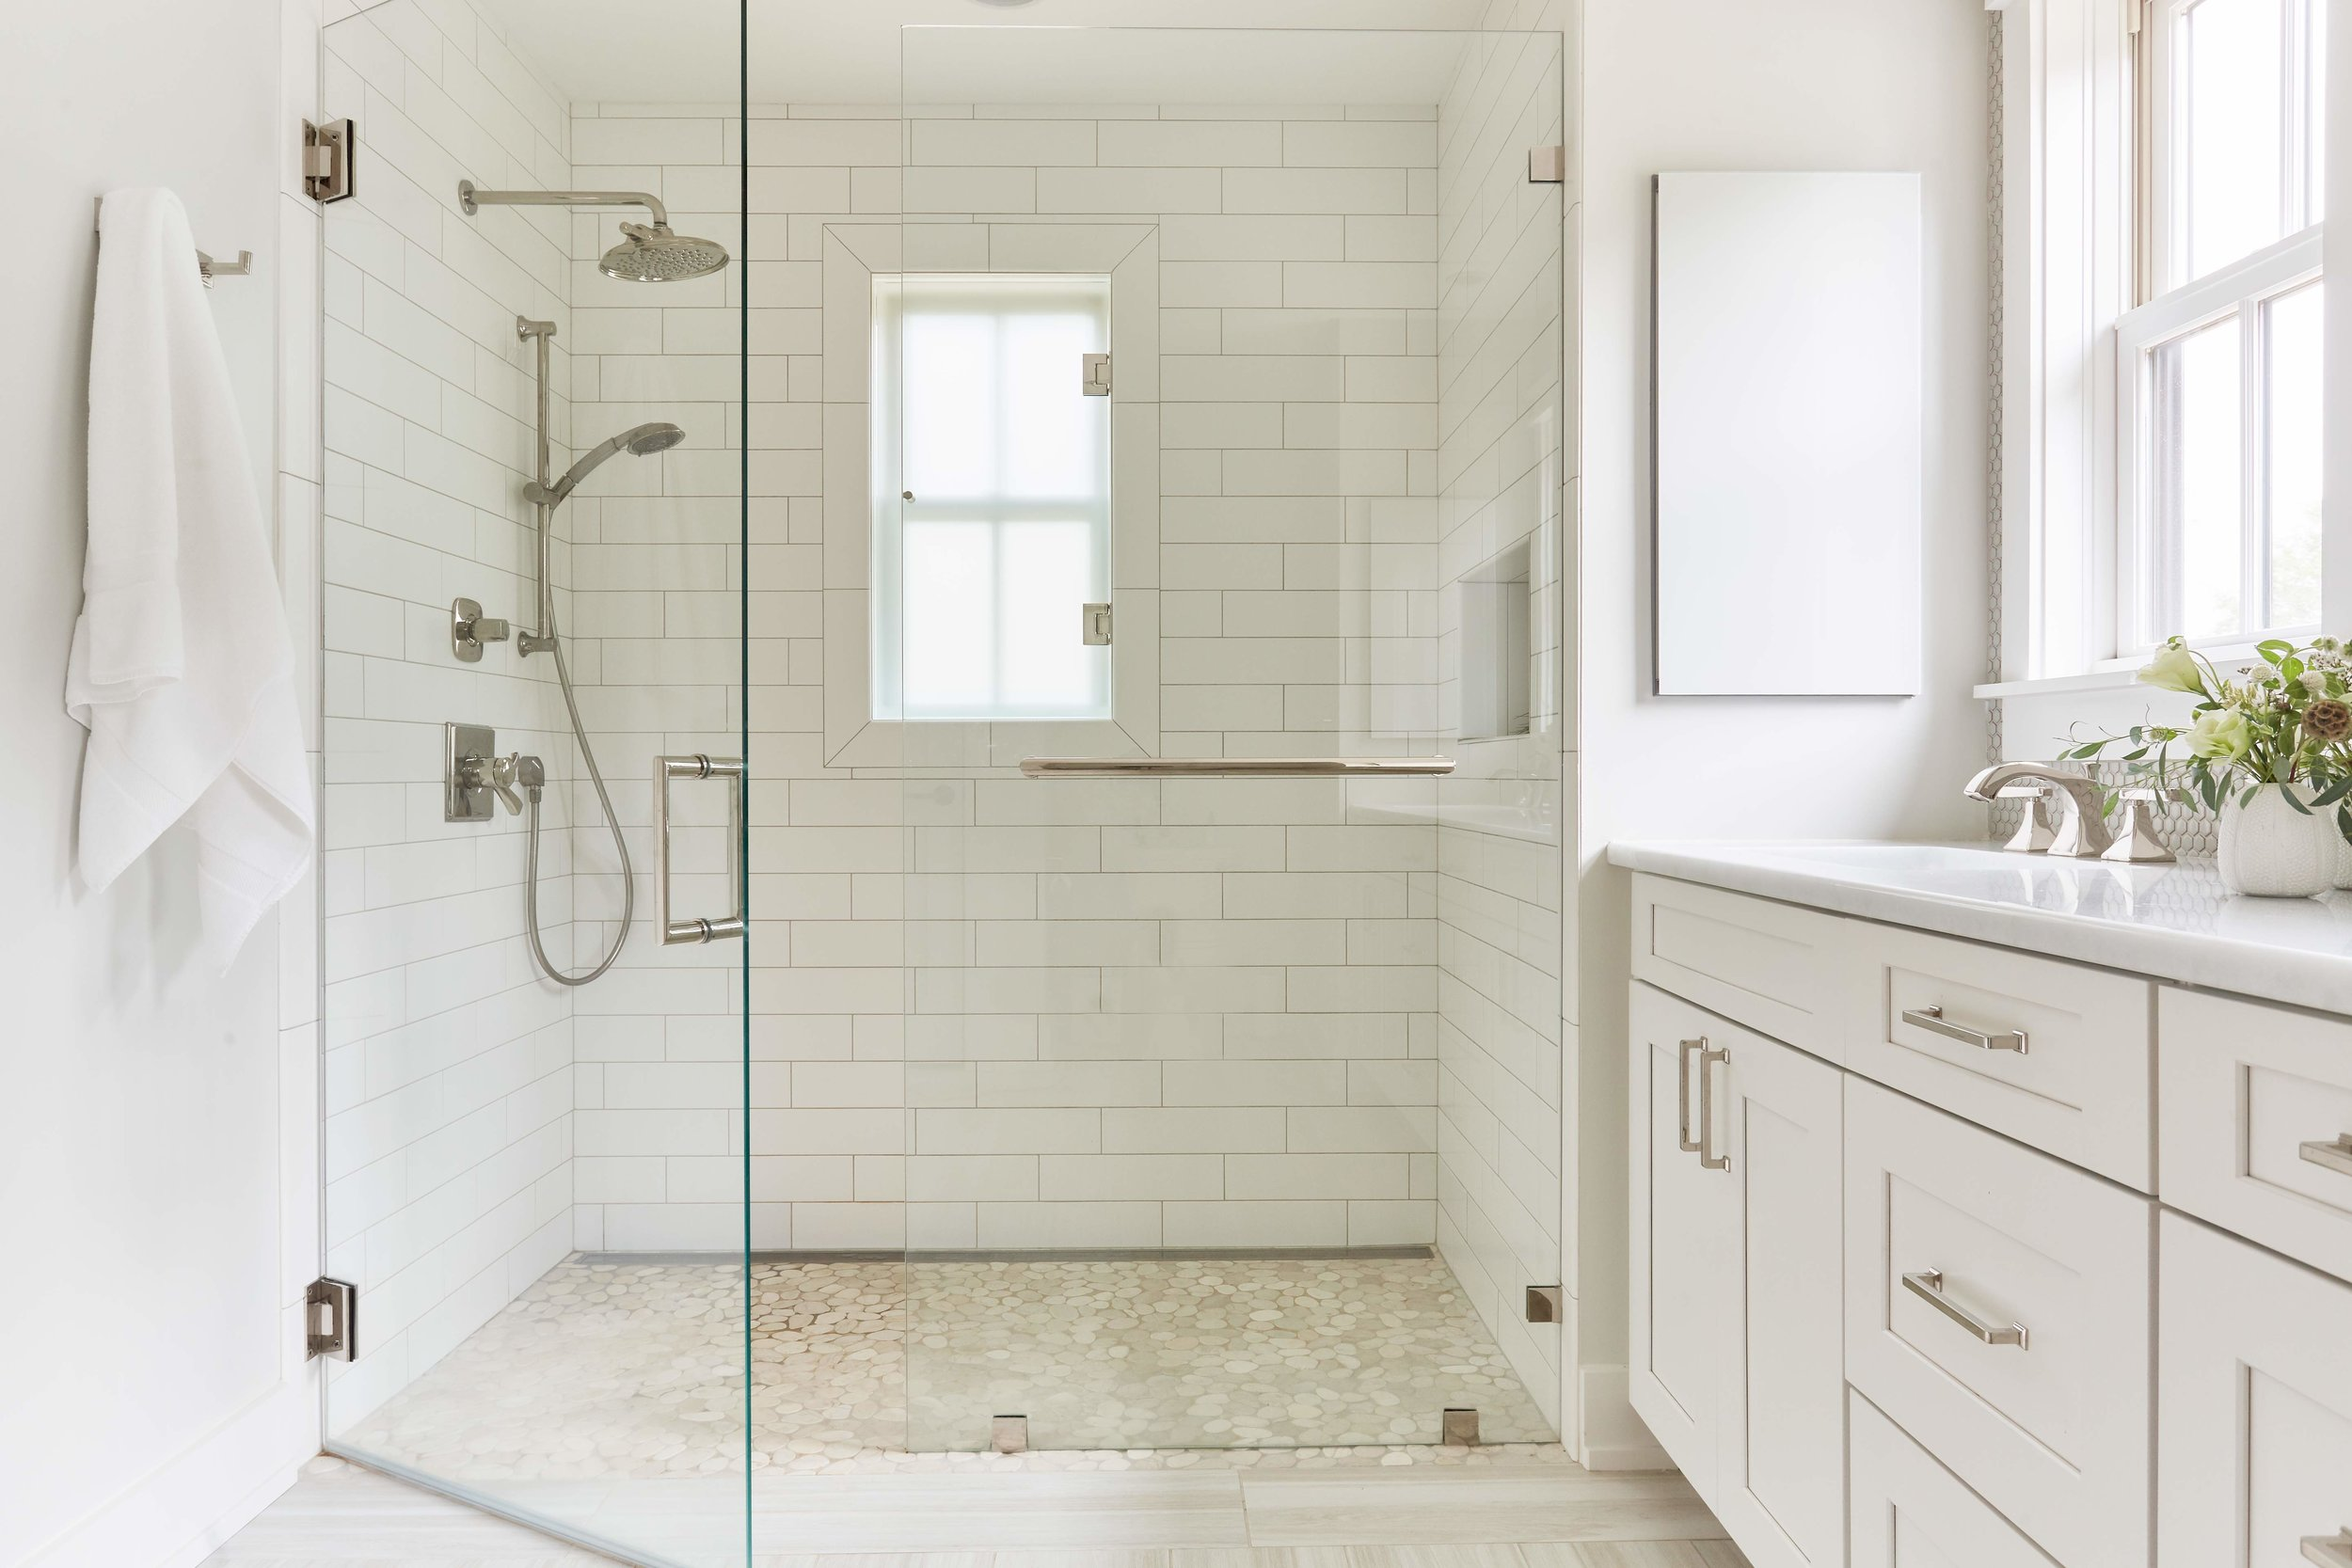 Zero-entry shower in first floor bathroom allows owners to age in place.